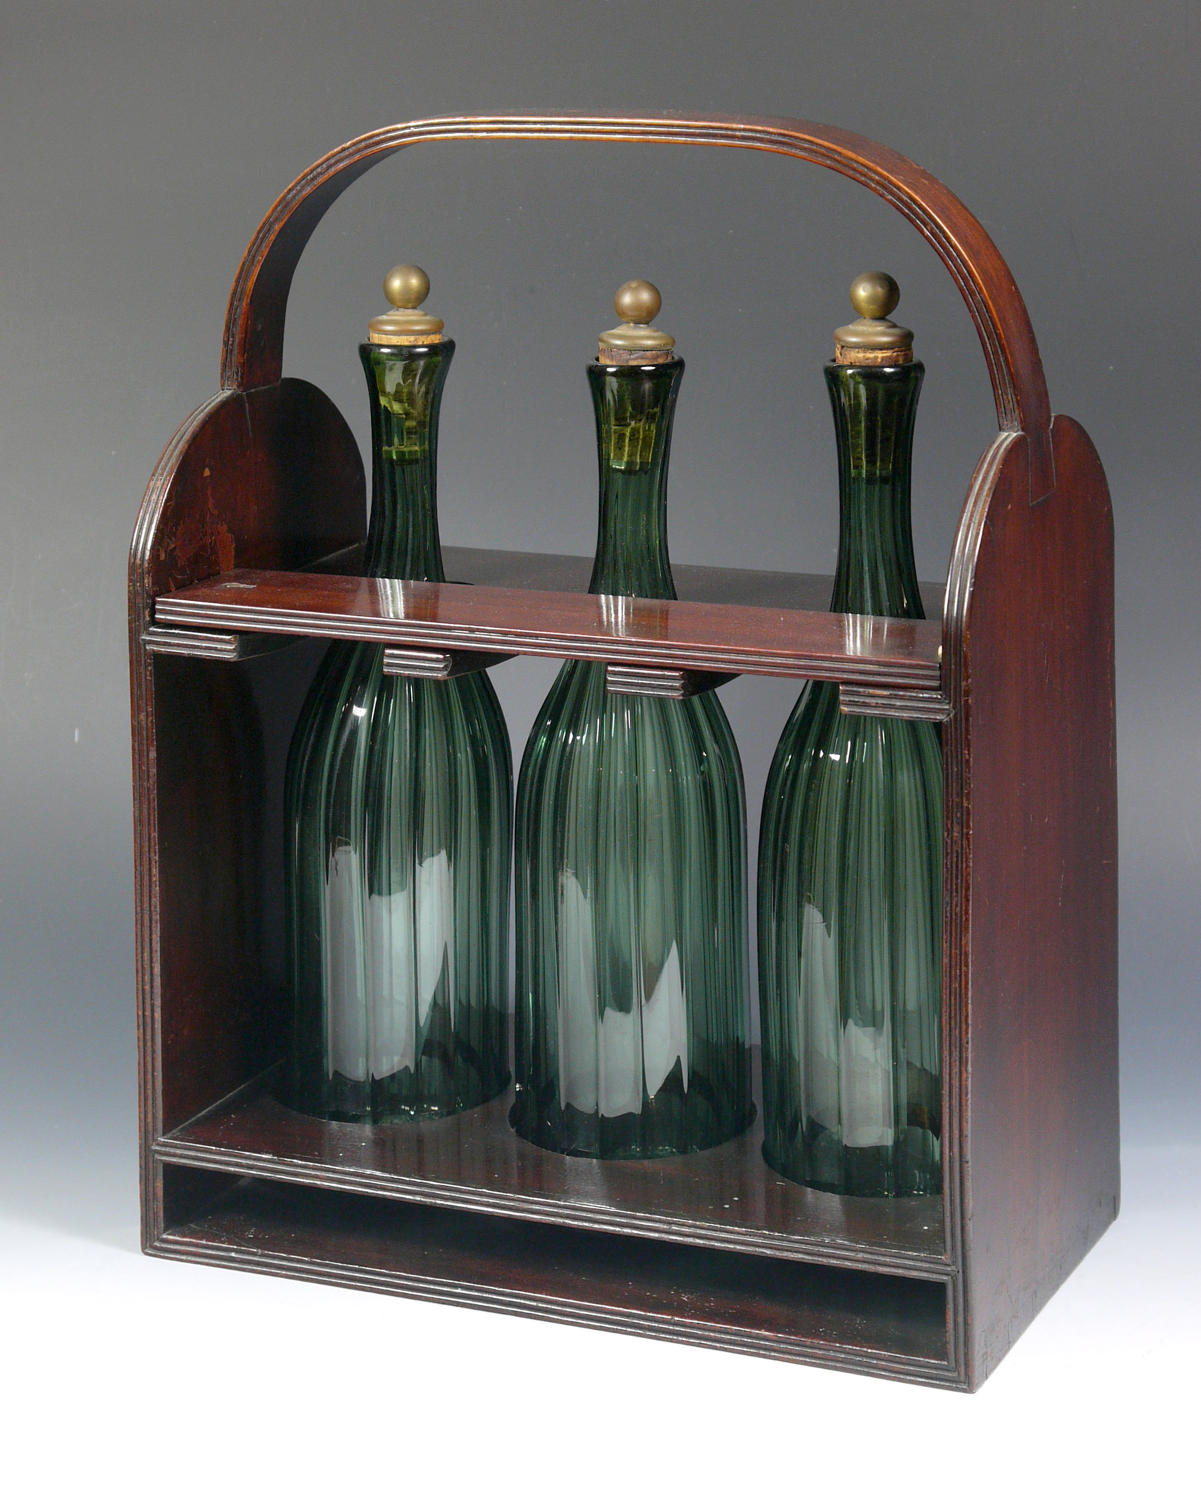 An unusual mahogany tantalus with green bottles